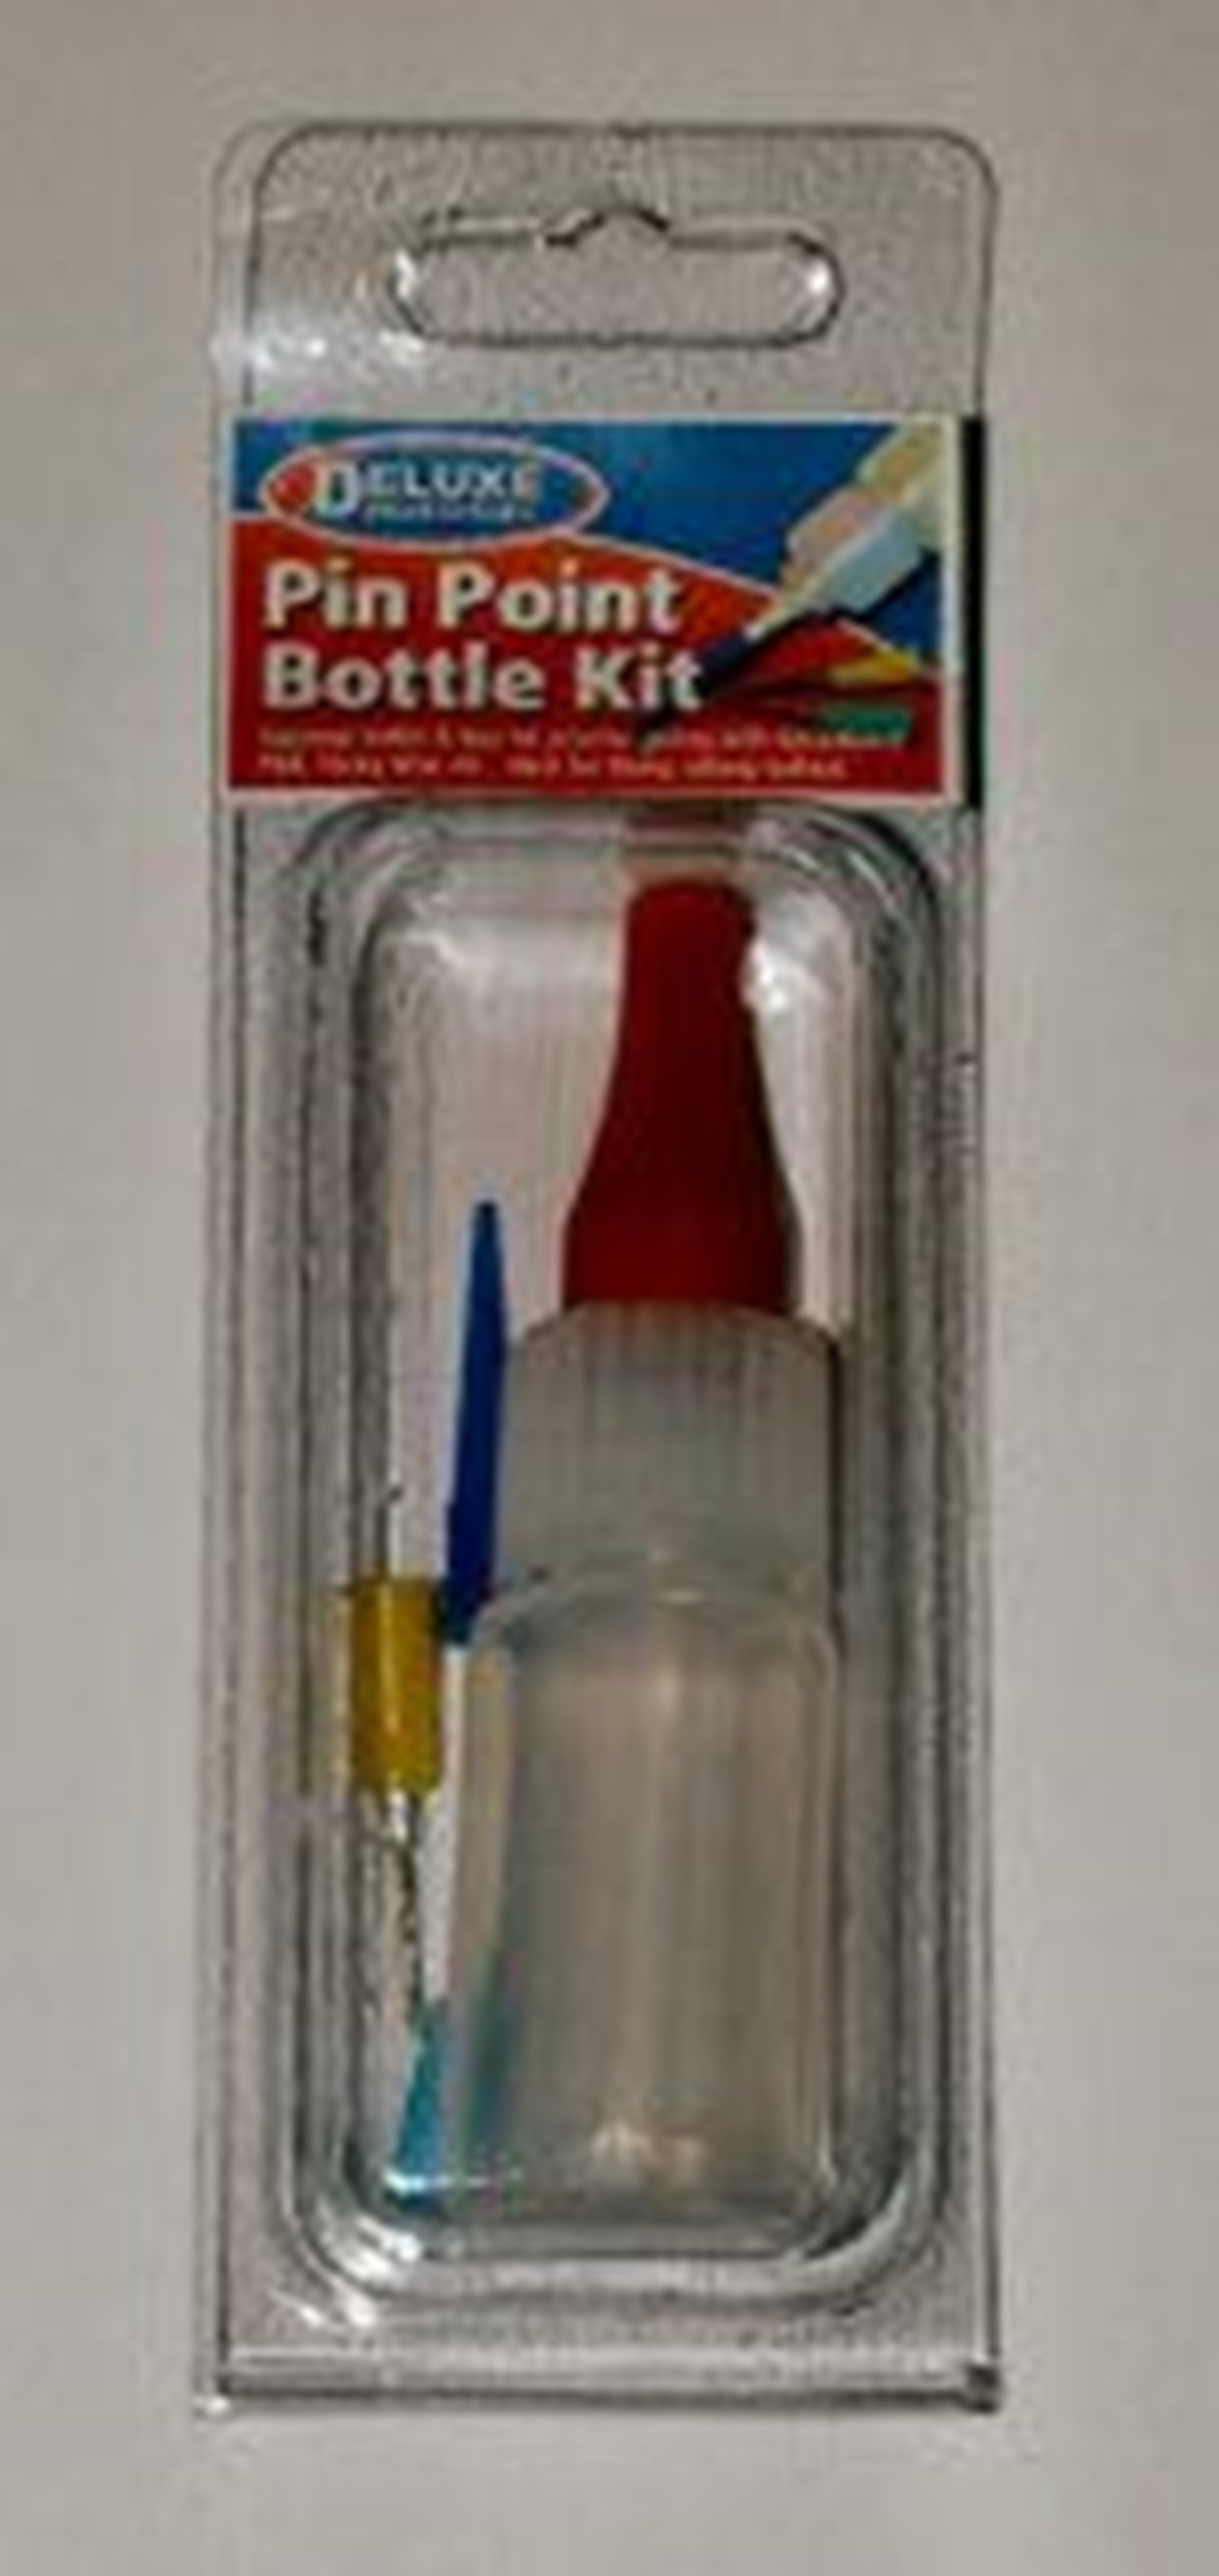 Pin Point Bottle Kit